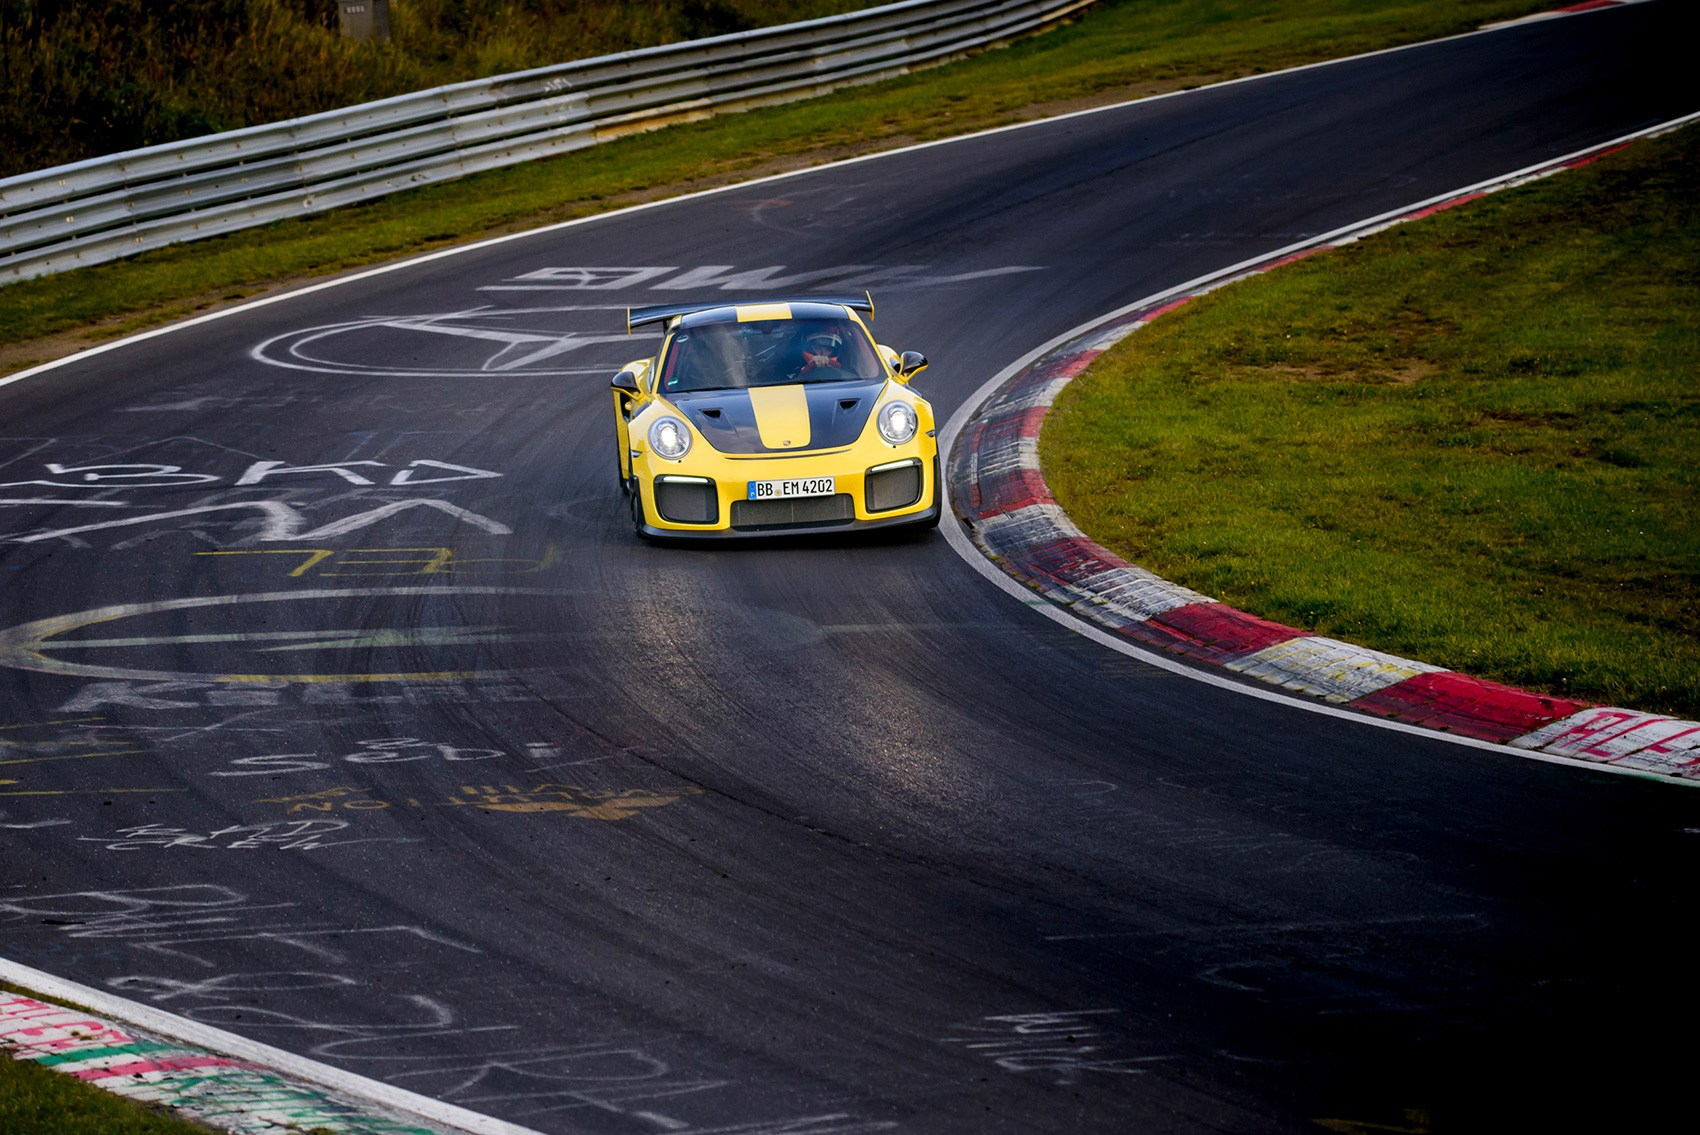 Porsche's new 911 GT2 RS just crushed the Nürburgring lap record